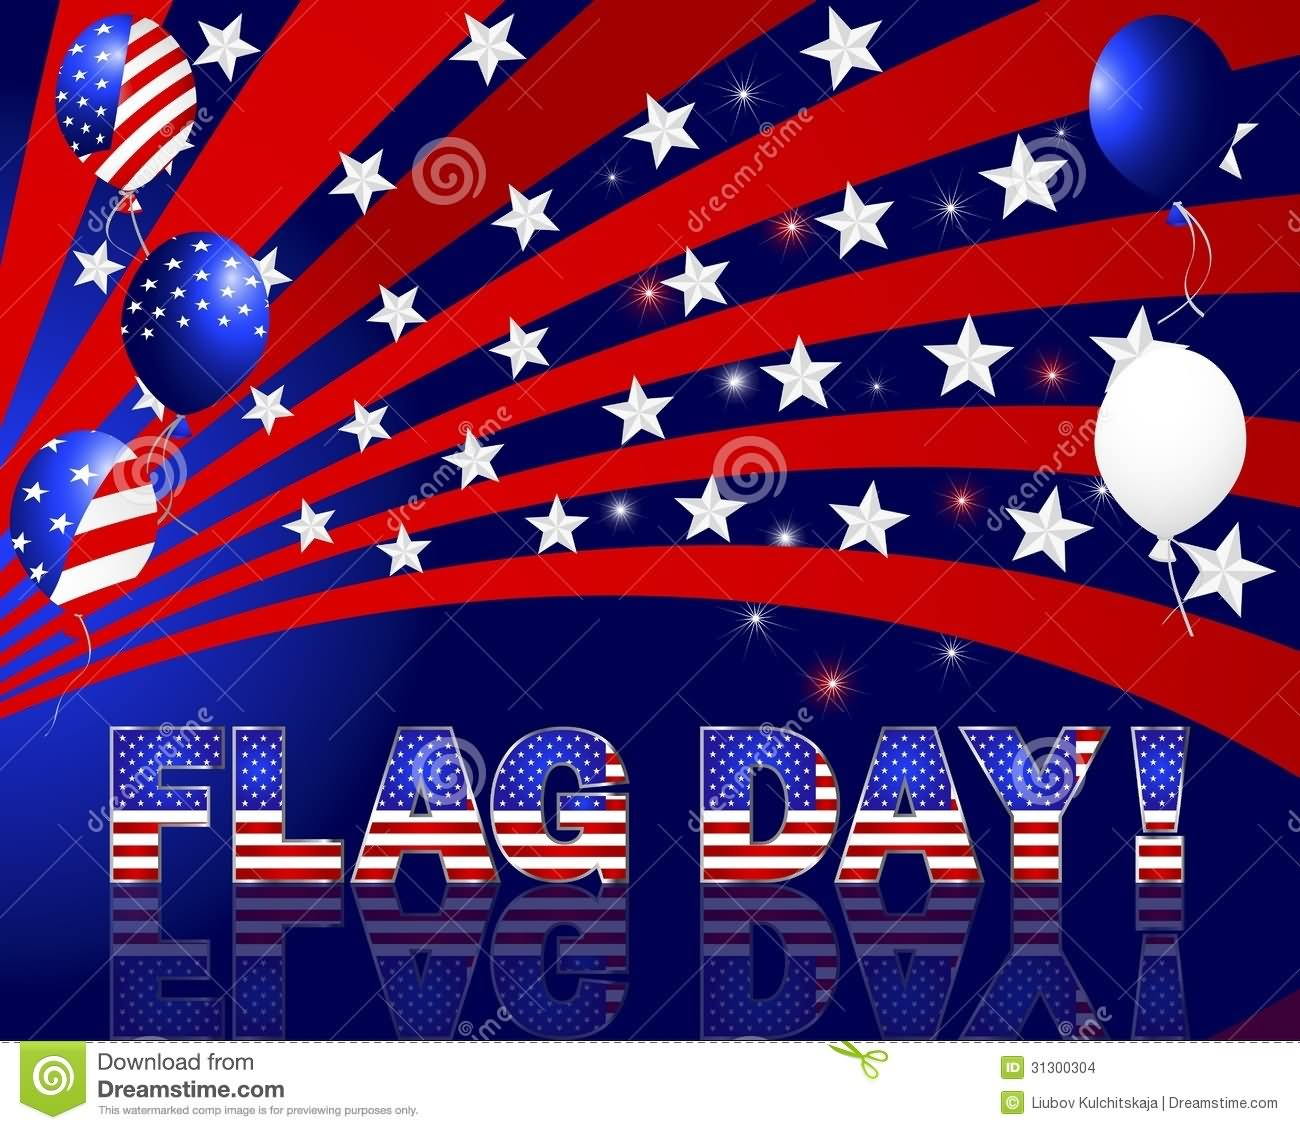 15+ Wonderful Flag Day Clipart Images And Pictures.